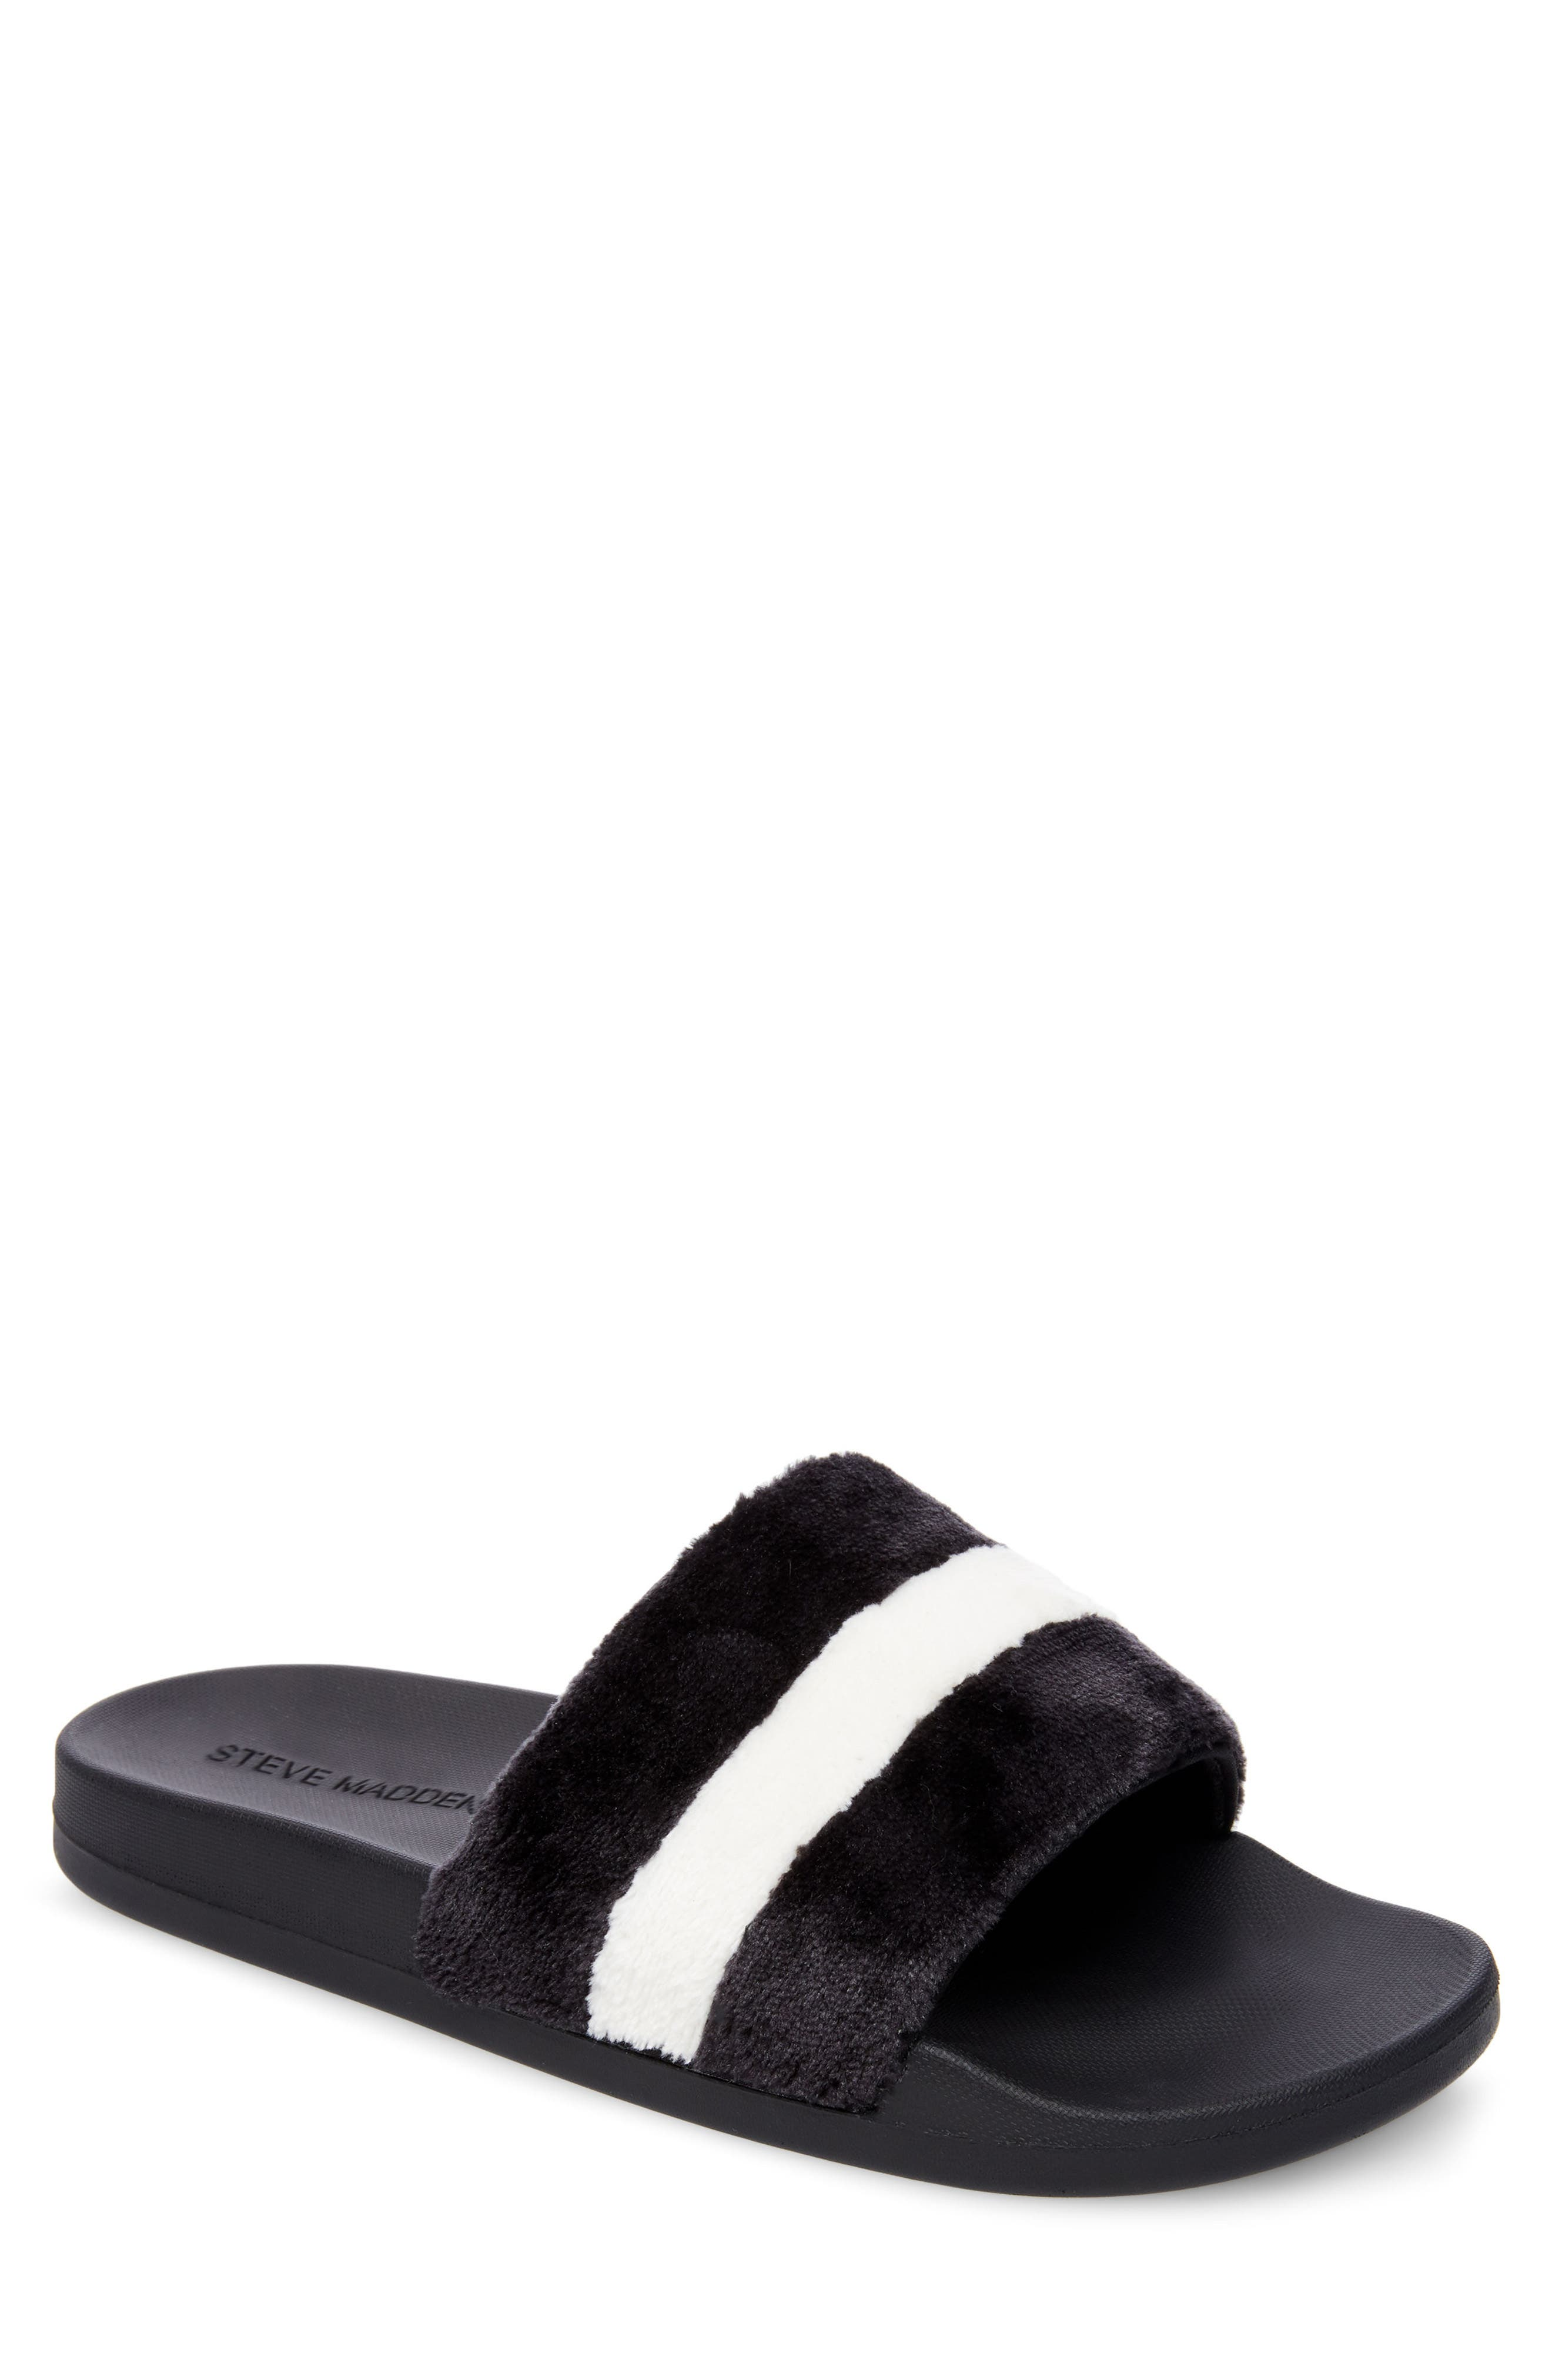 Resport Plush Slide Sandal,                             Main thumbnail 1, color,                             003